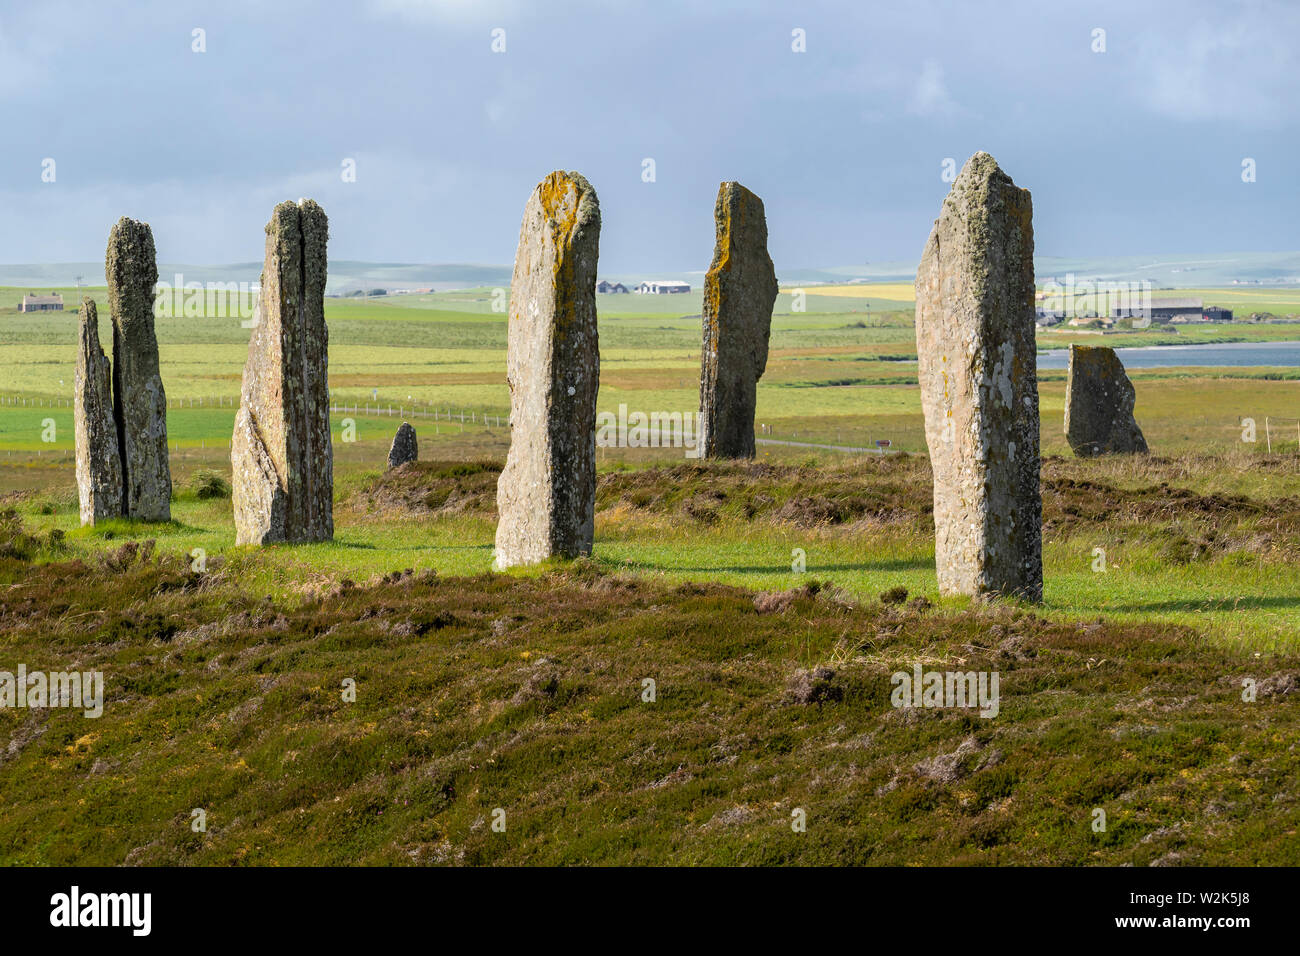 The Ring of Brodgar is a Neolithic henge and stone circle about 6 miles north-east of Stromness on the Mainland, the largest island in Orkney, Scotlan Stock Photo